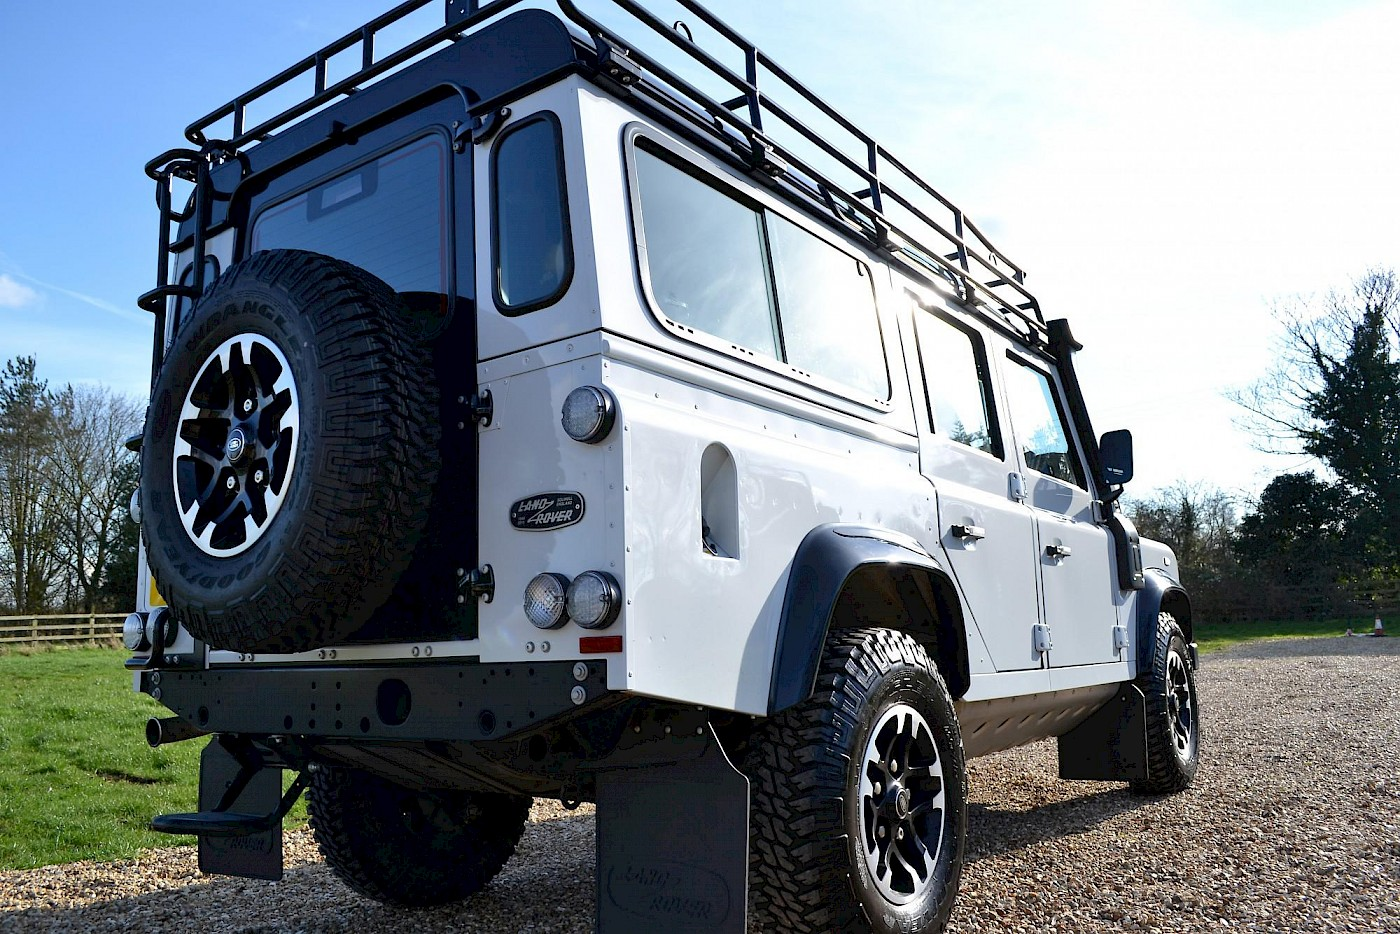 2015/65 Land Rover Defender 2.2TD 110 Adventure Limited Edition 8